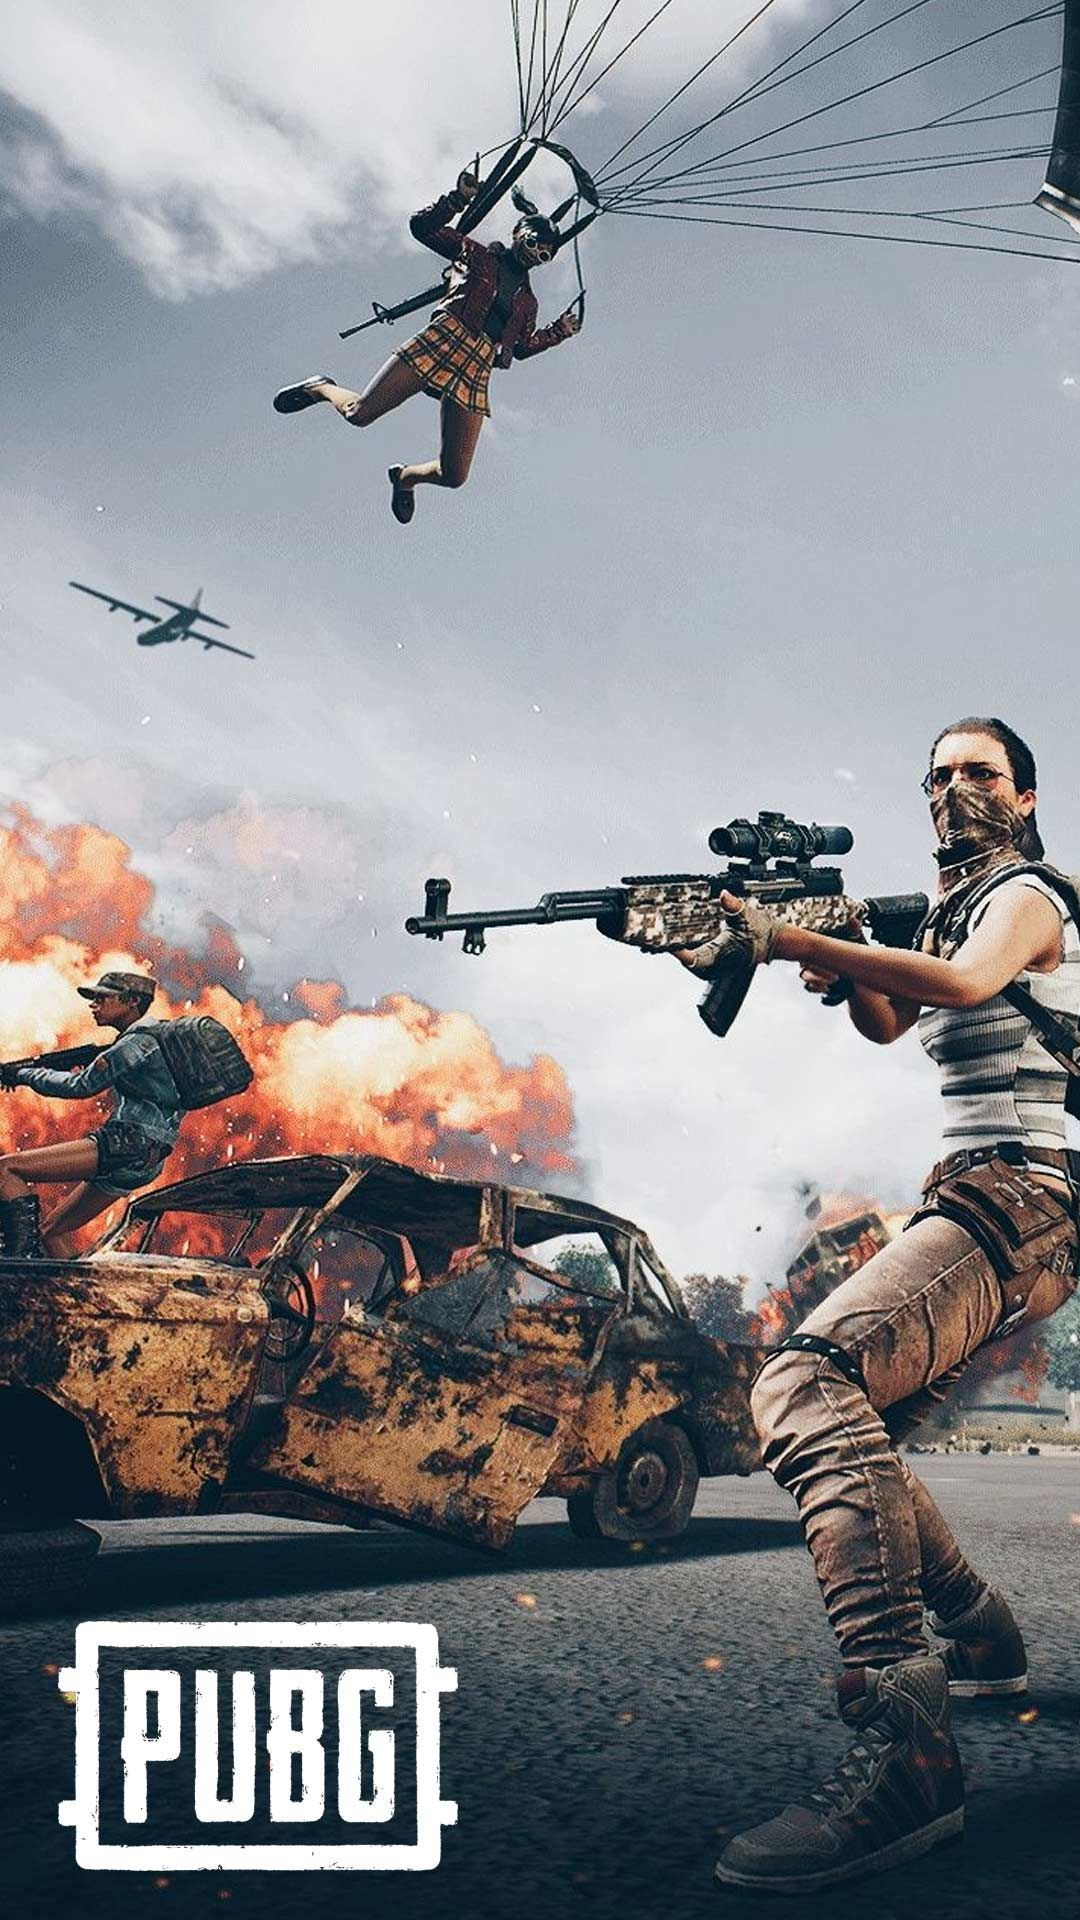 20 Pubg Mobile Wallpaper Hd Android Phone Backgrounds Download 20